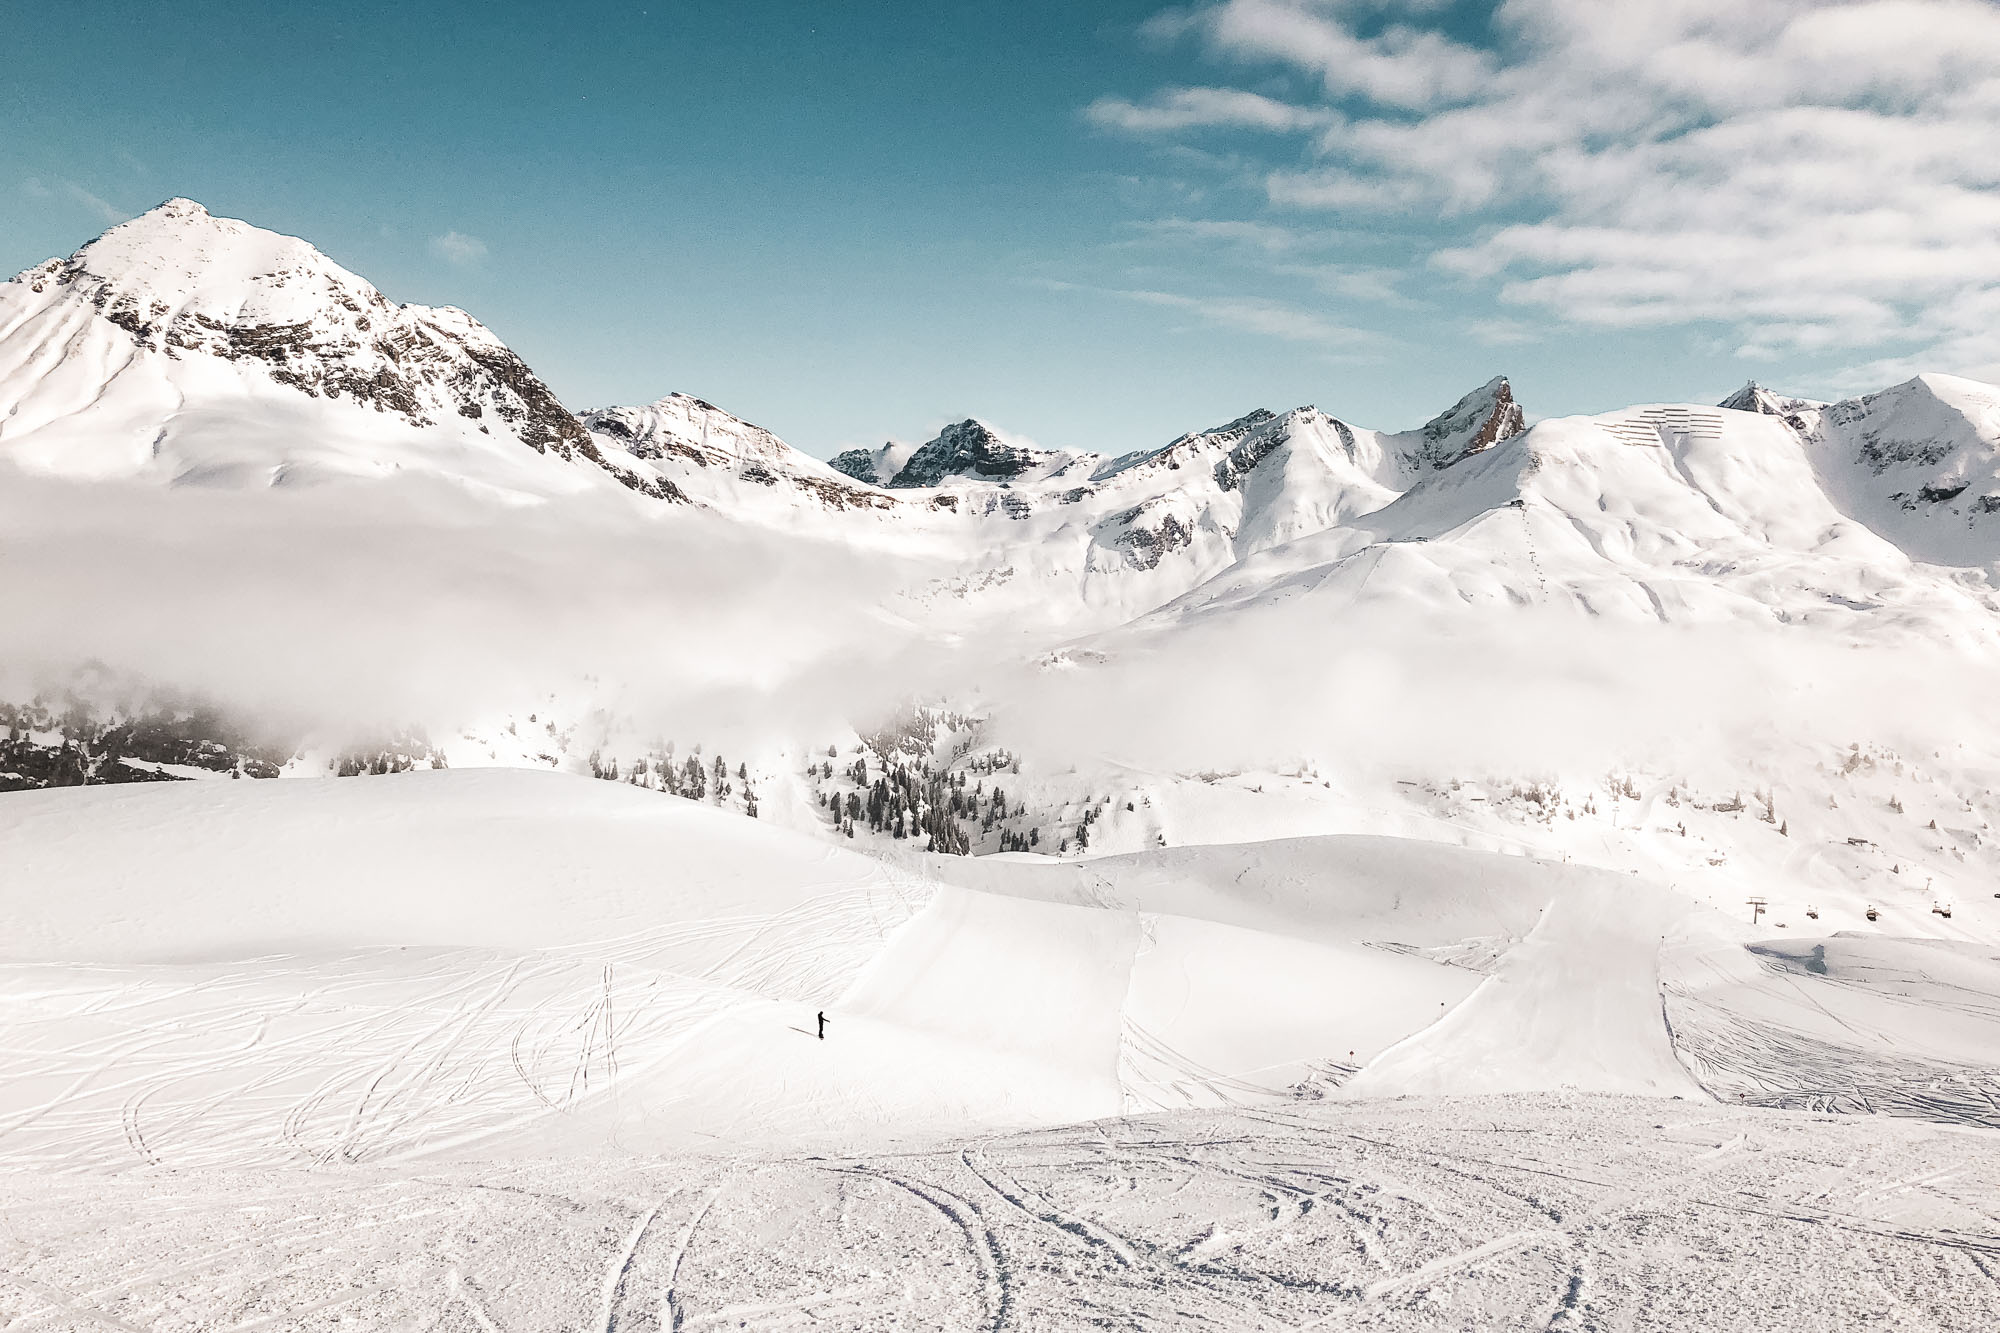 Ski slopes in Lech Austria in Europe